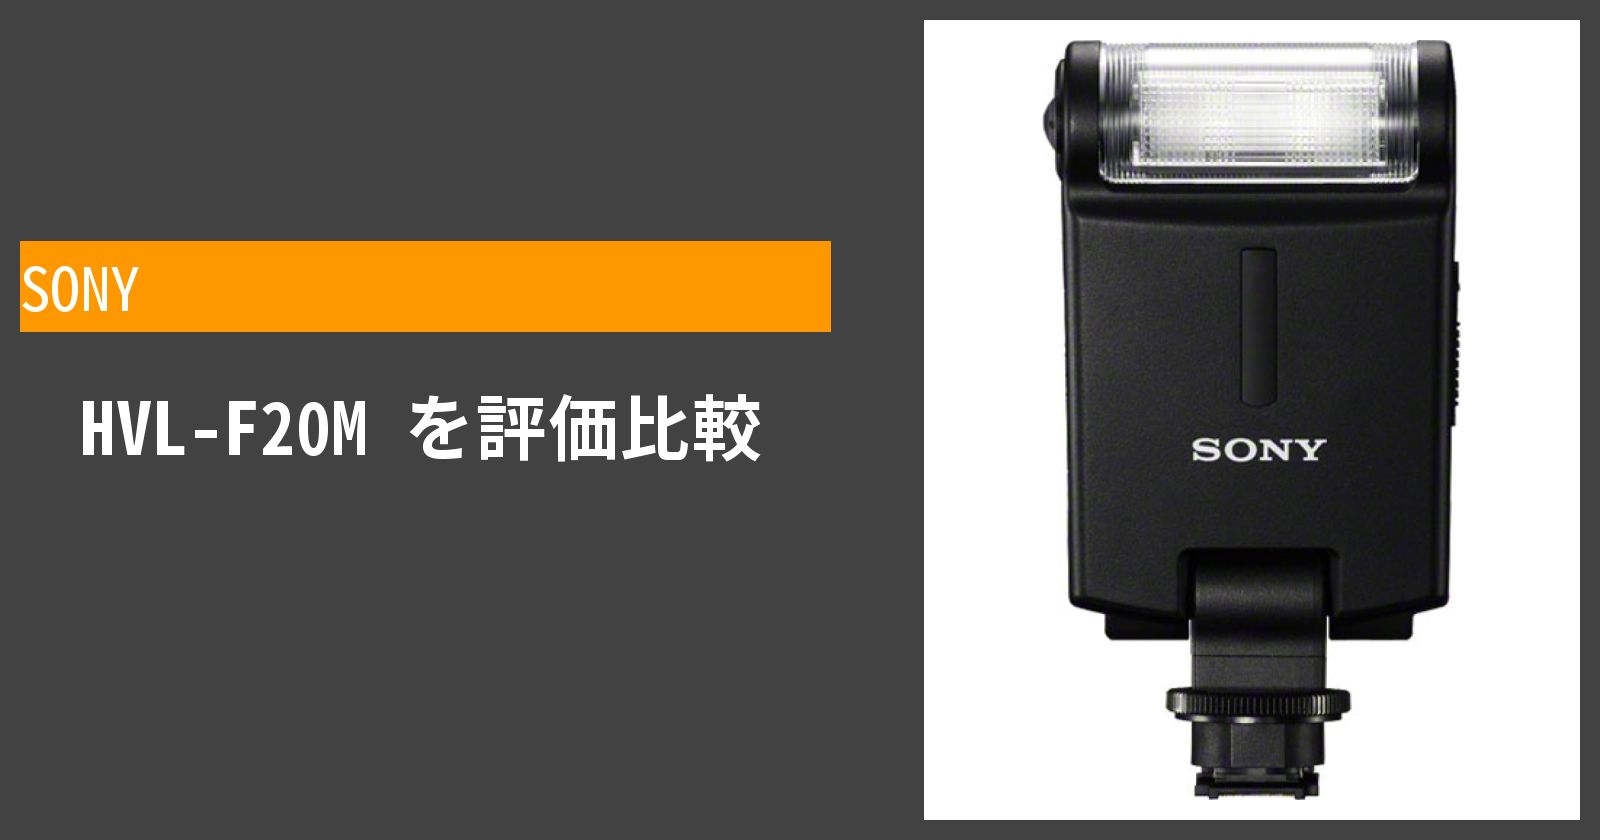 HVL-F20Mを徹底評価